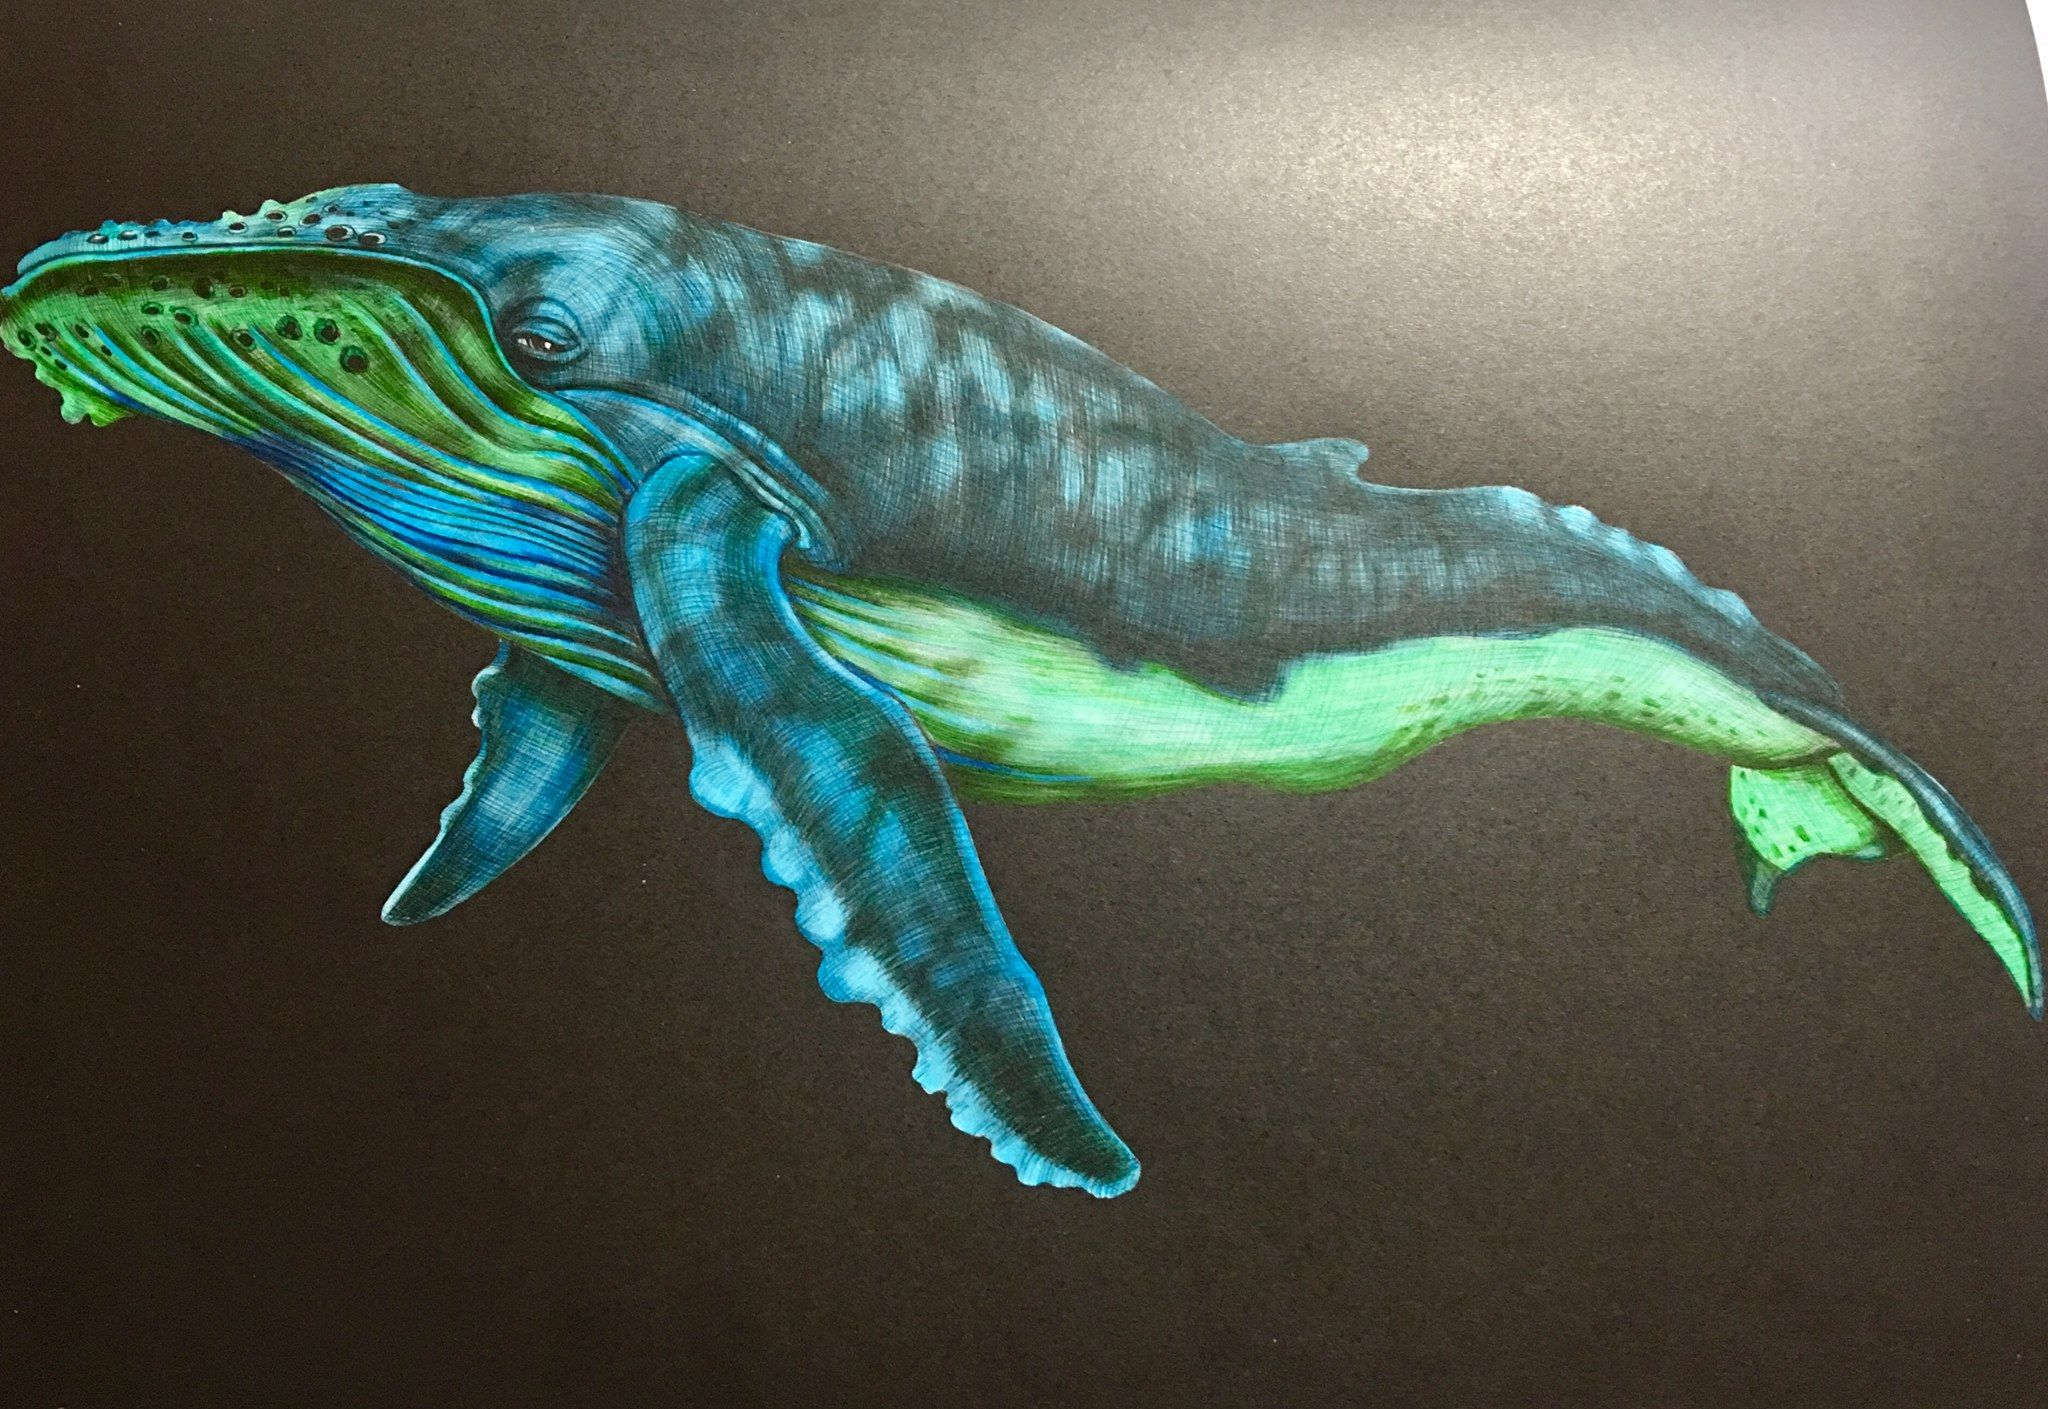 Humpback Whale Coloured By Me And From The Book Intricate Ink Animals In Detail By Tim Jeffs Kleurplaten Inkt